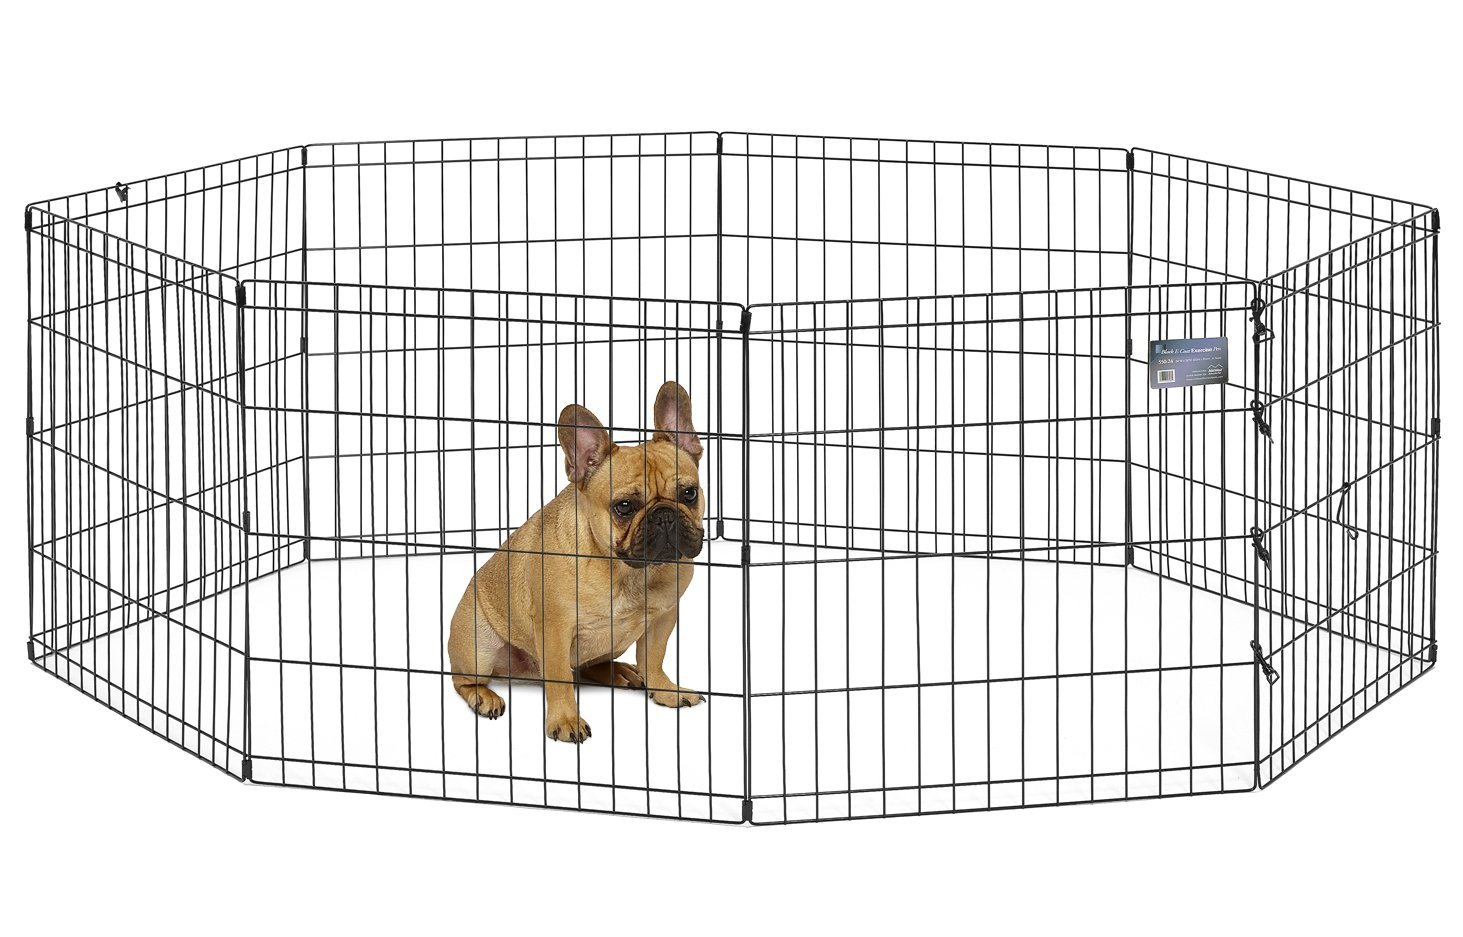 ... Puppy Playpen with Floor Grid. 127.26. MidWest Homes for Pets Foldable Metal Exercise Pen / Pet Playpen, 8 Panels Each